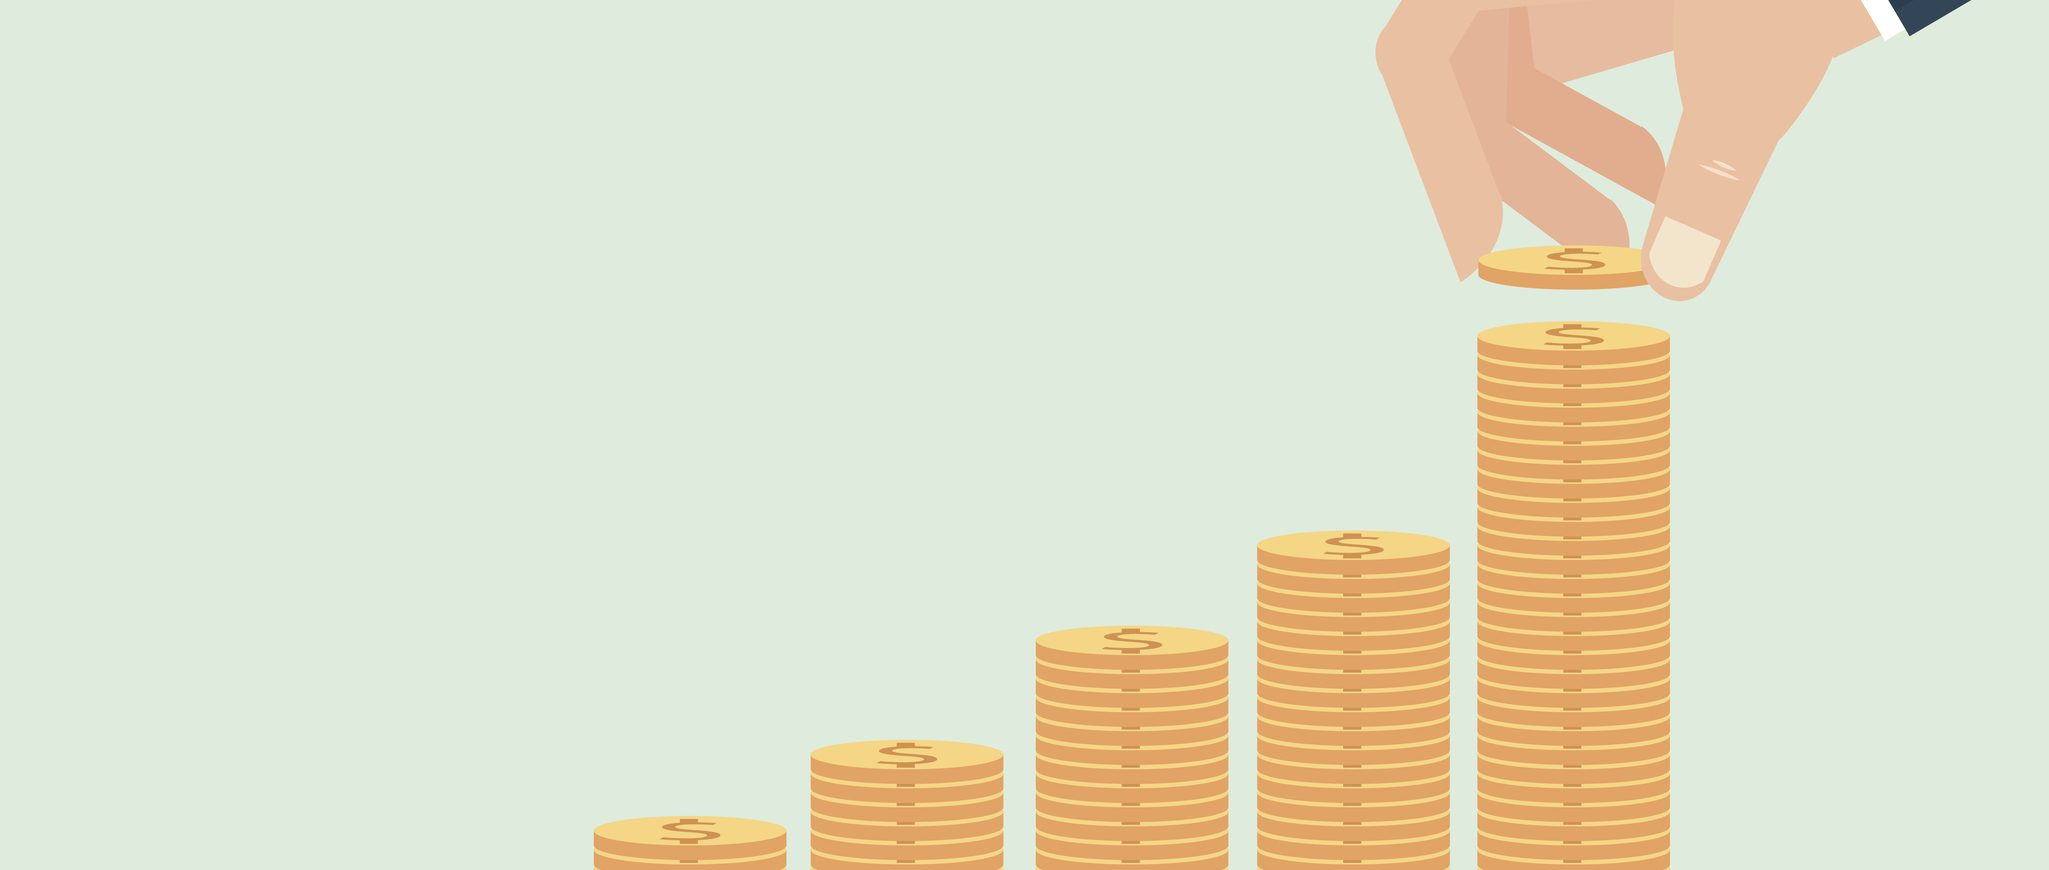 Harness the power of compounding interest to reach your financial goals